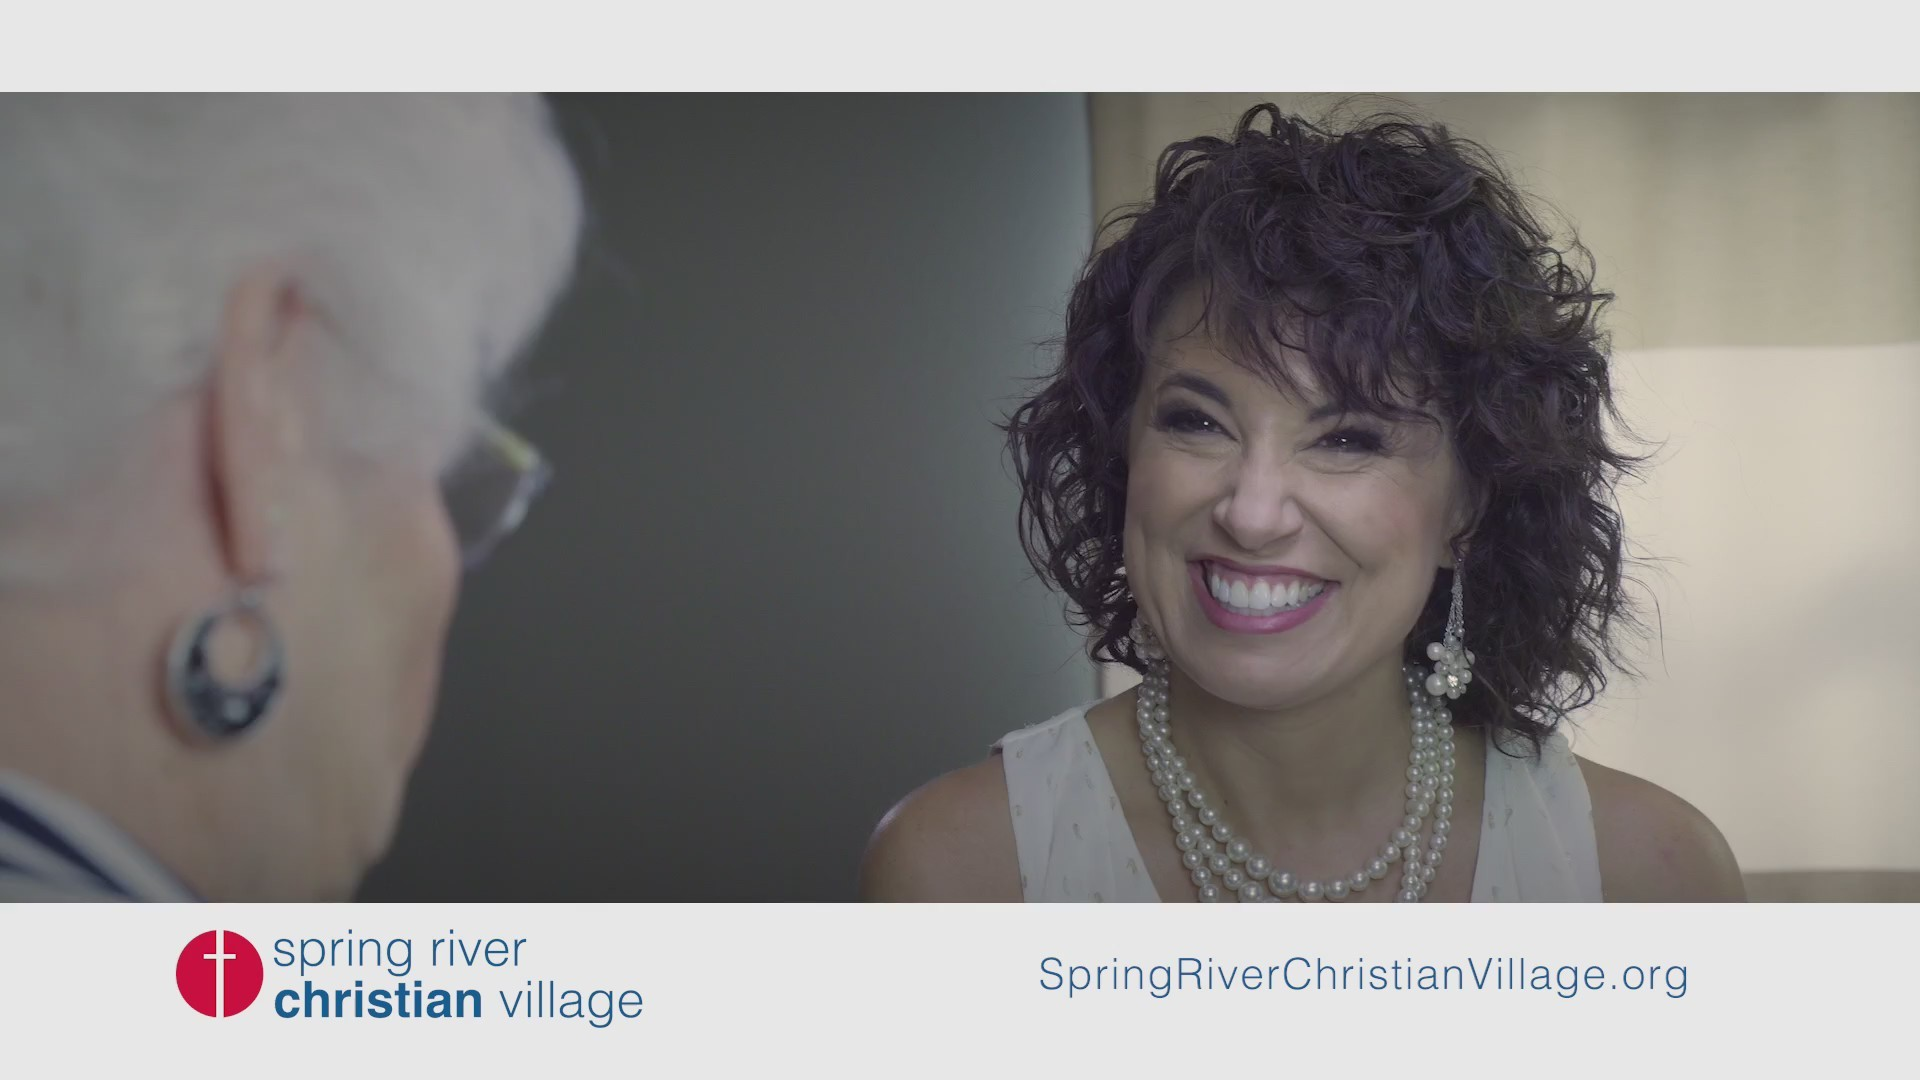 Spring River Christian Village - Sonya 2 (013119)